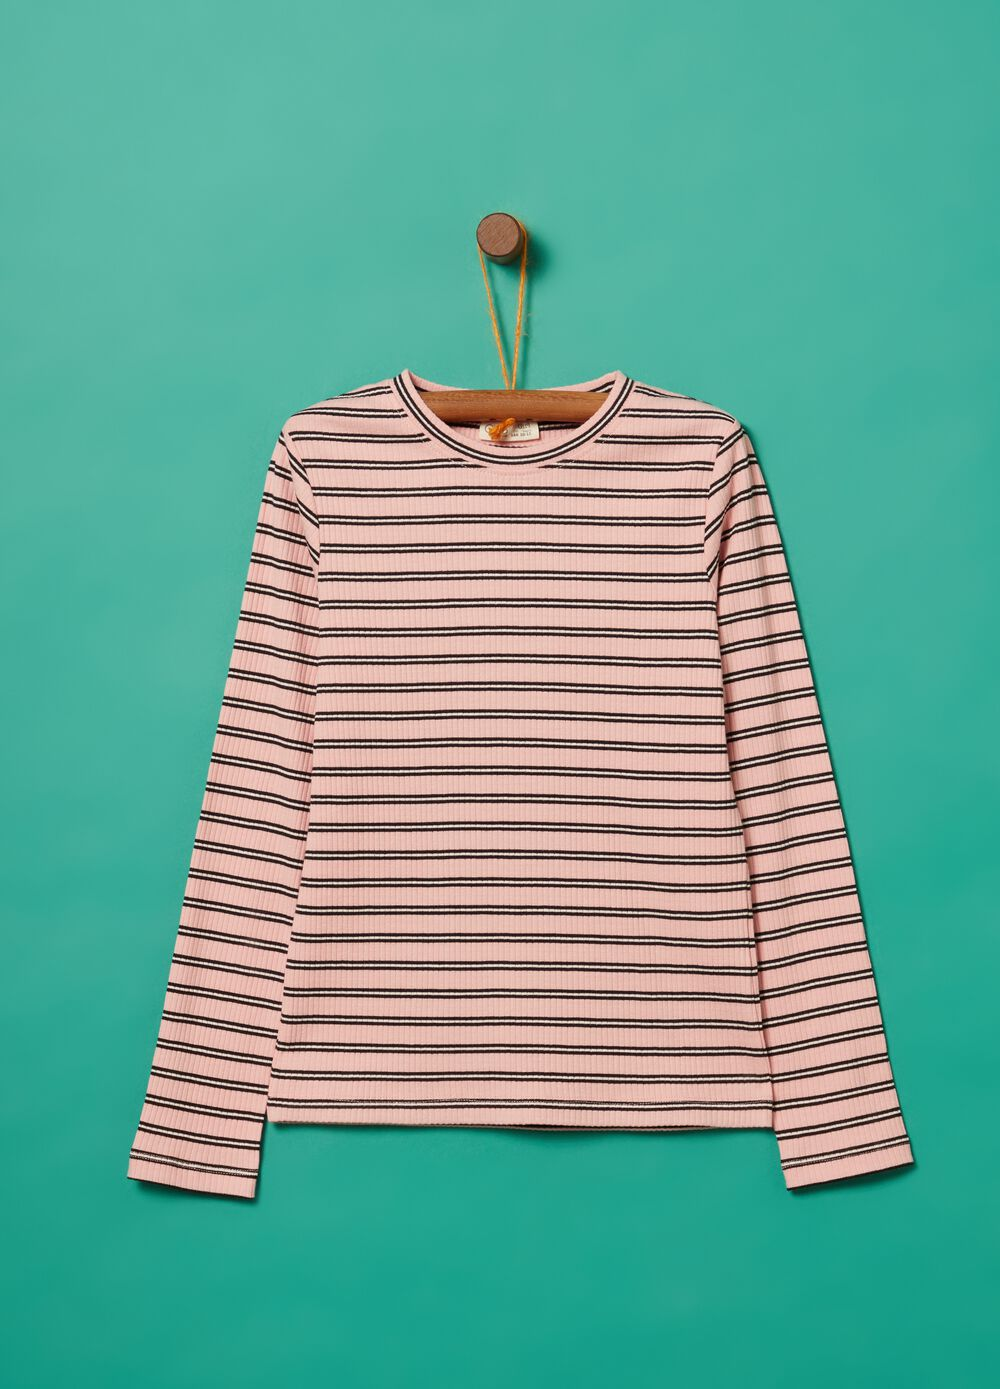 Long sleeved T-shirt with striped pattern